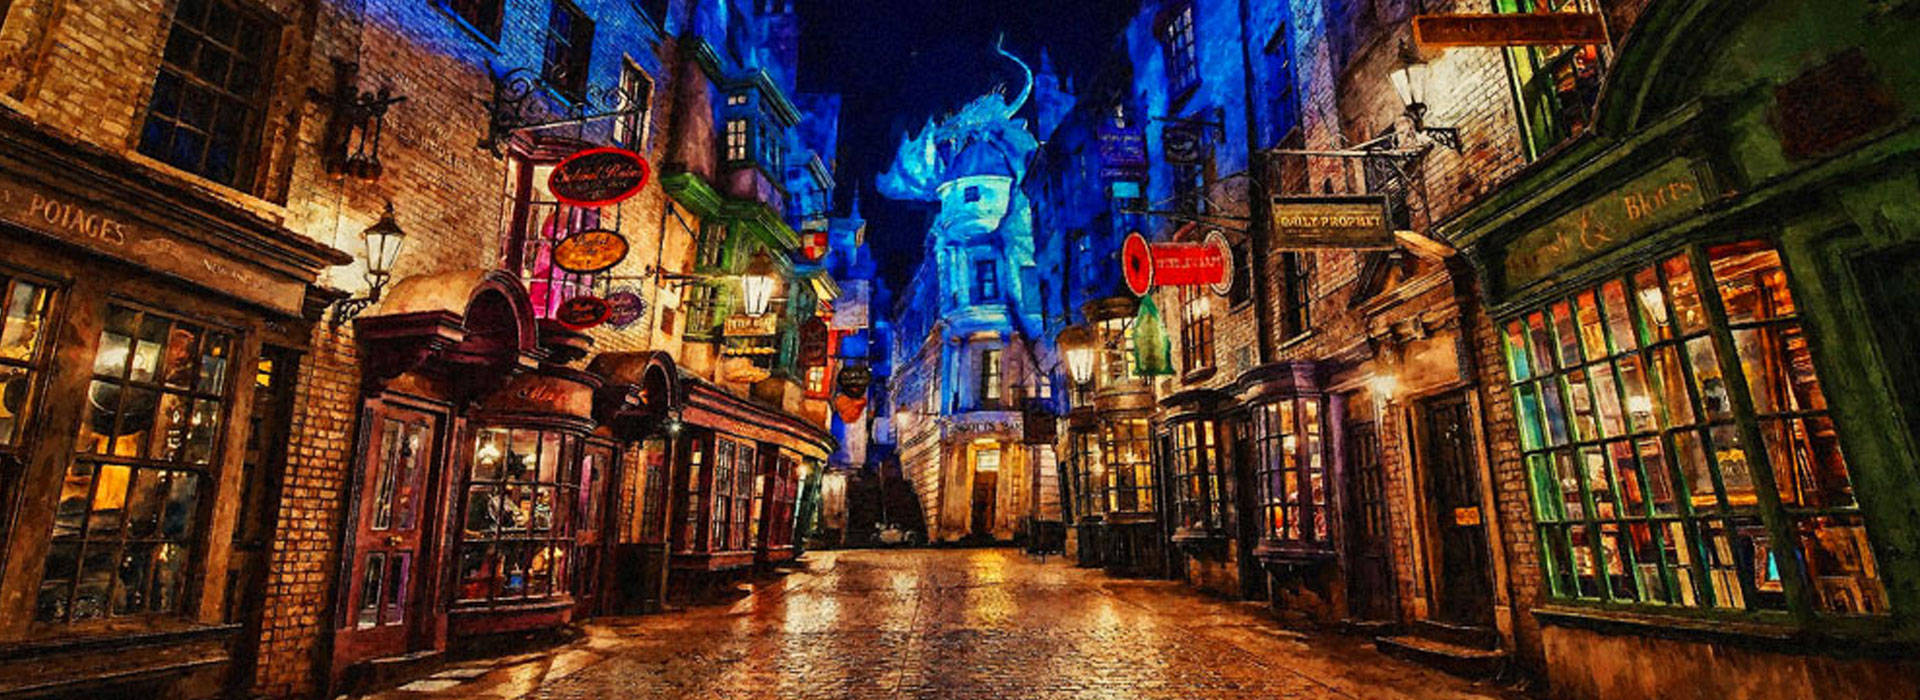 4D3N London with Ultimate Harry Potter Experience